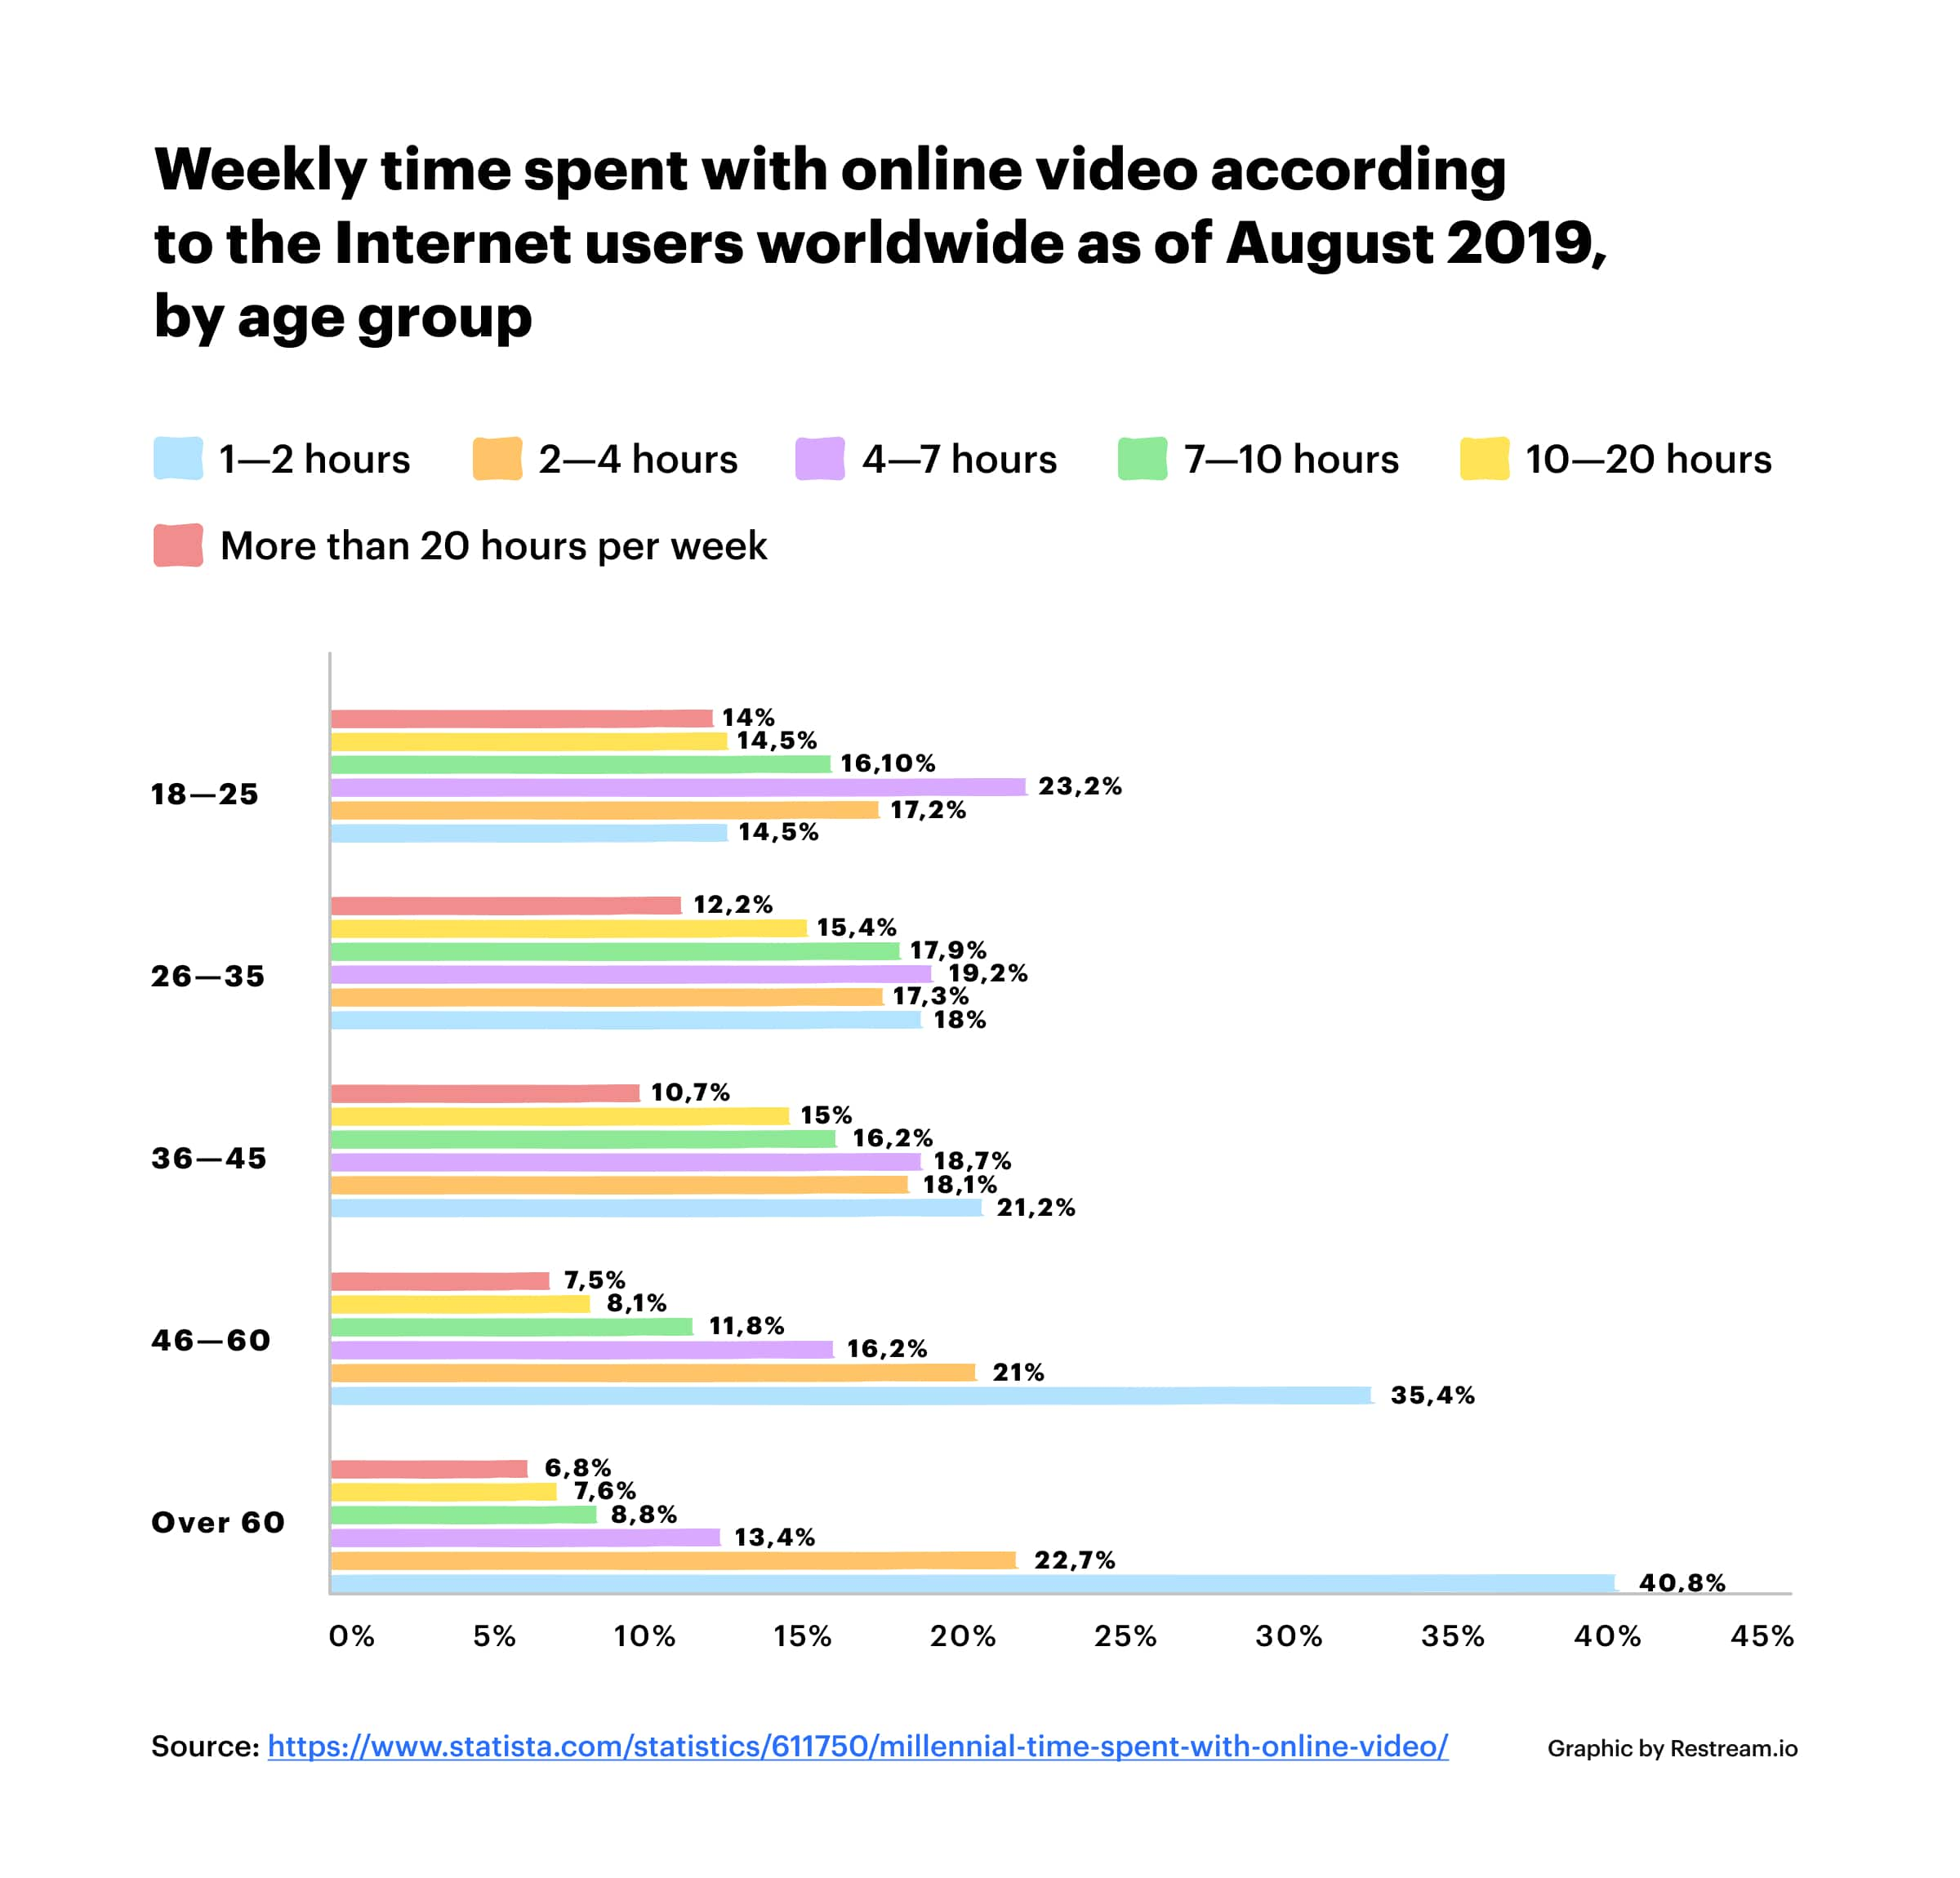 Weekly time spent with online video, by age group